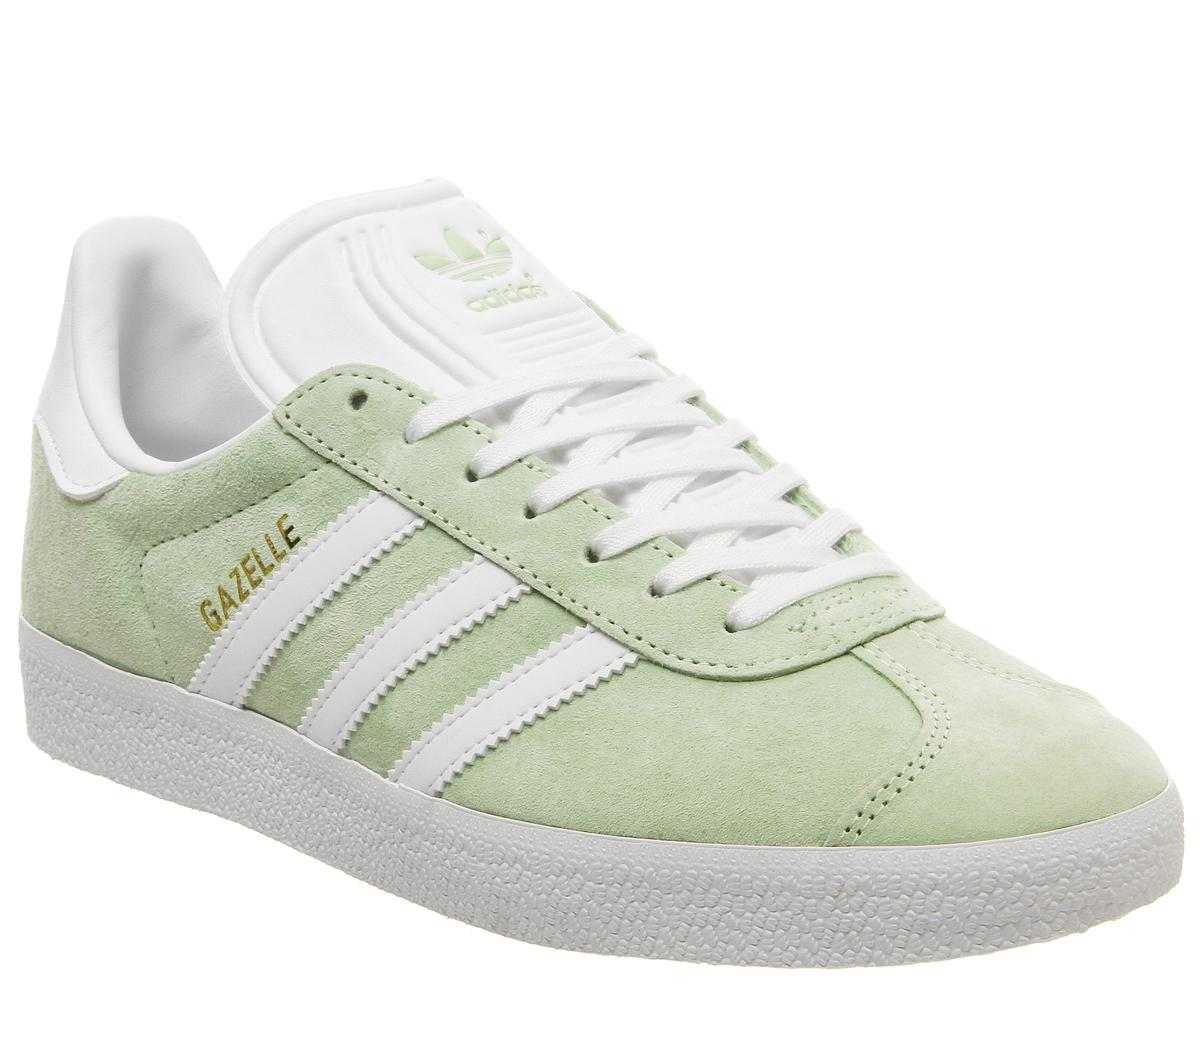 Adidas Gazelles - OFFCUTS SHOES by OFFICE